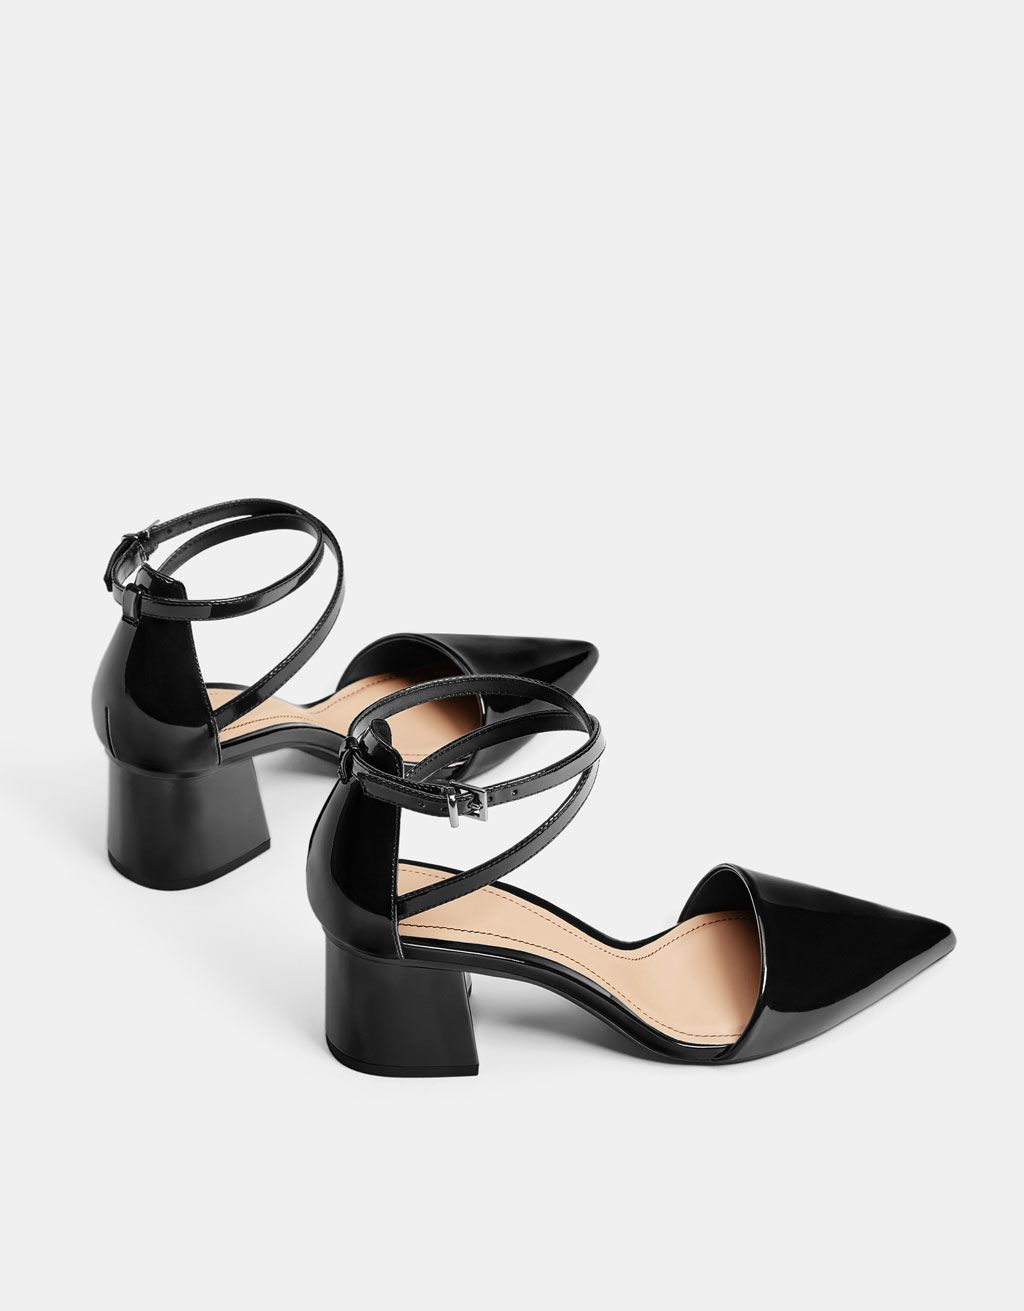 28a0e5ad49e Faux patent leather mid-heel shoes in 2019 | Shoes | Mid heel shoes ...